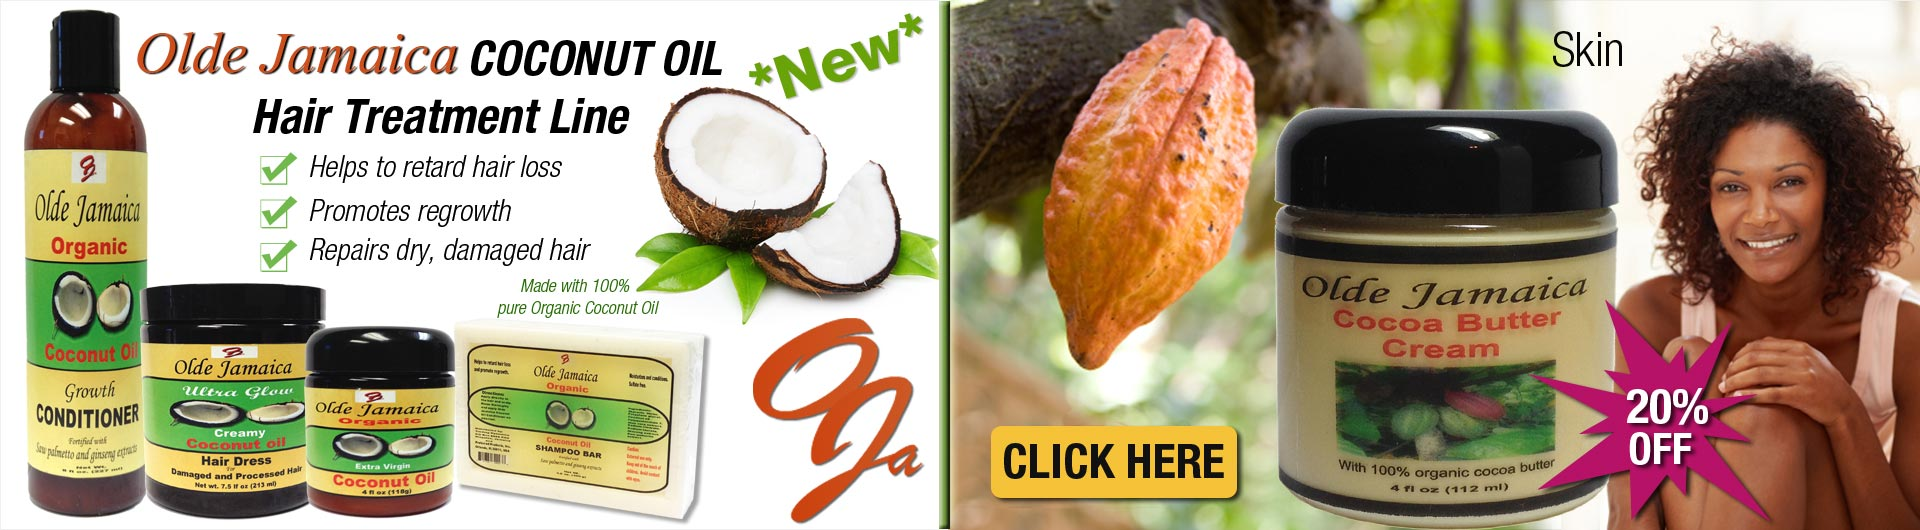 Check out Olde Jamaica's NEW Coconut Oil Hair Treatment line